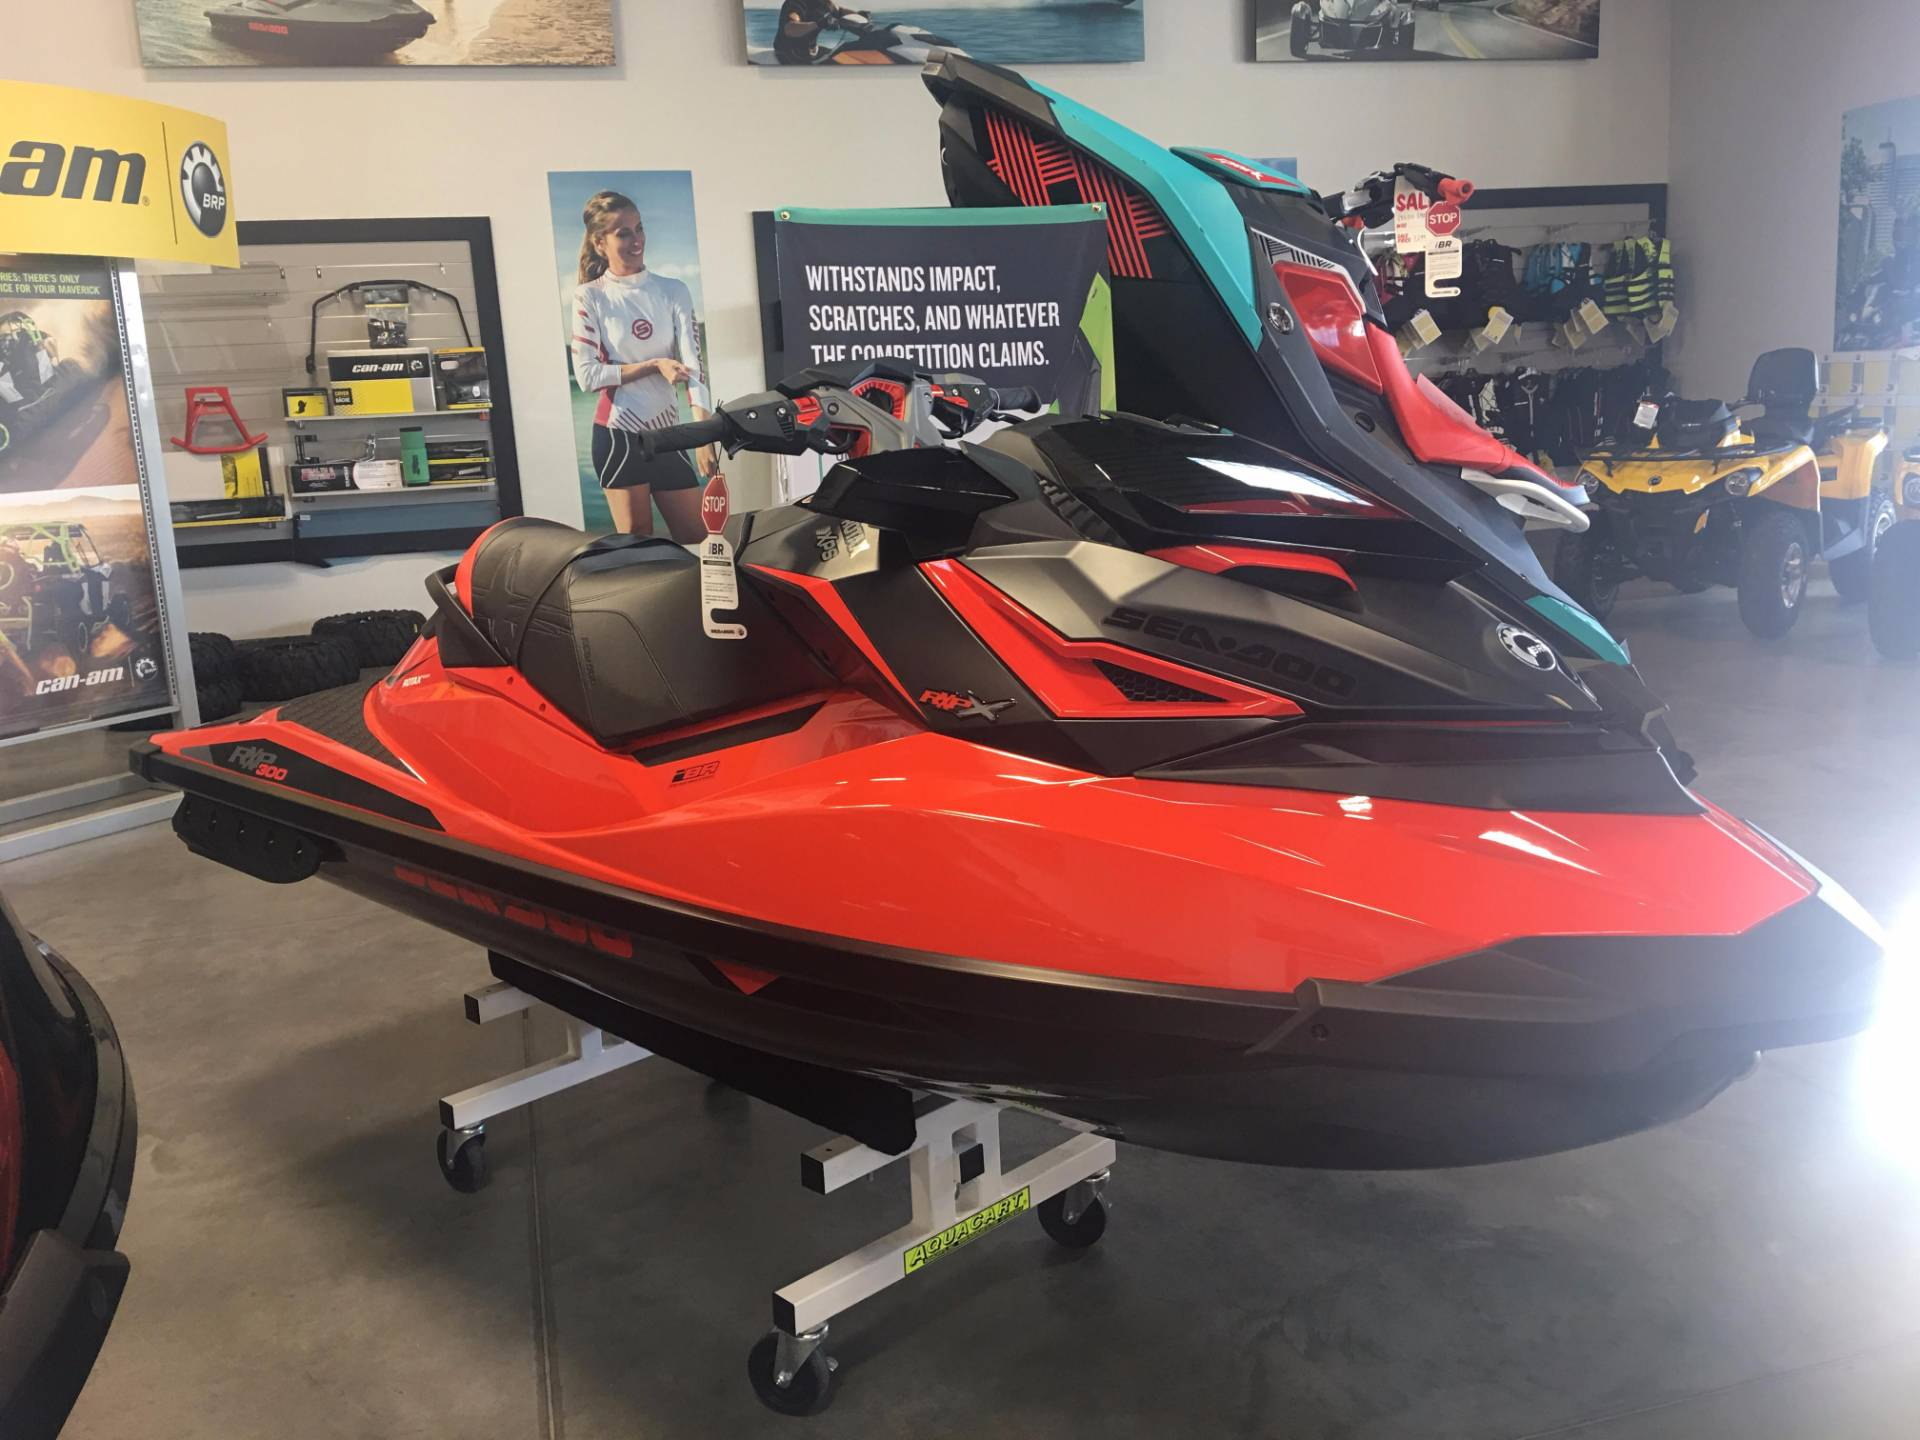 2017 Sea-Doo RXP®-X® 300 in Las Vegas, Nevada